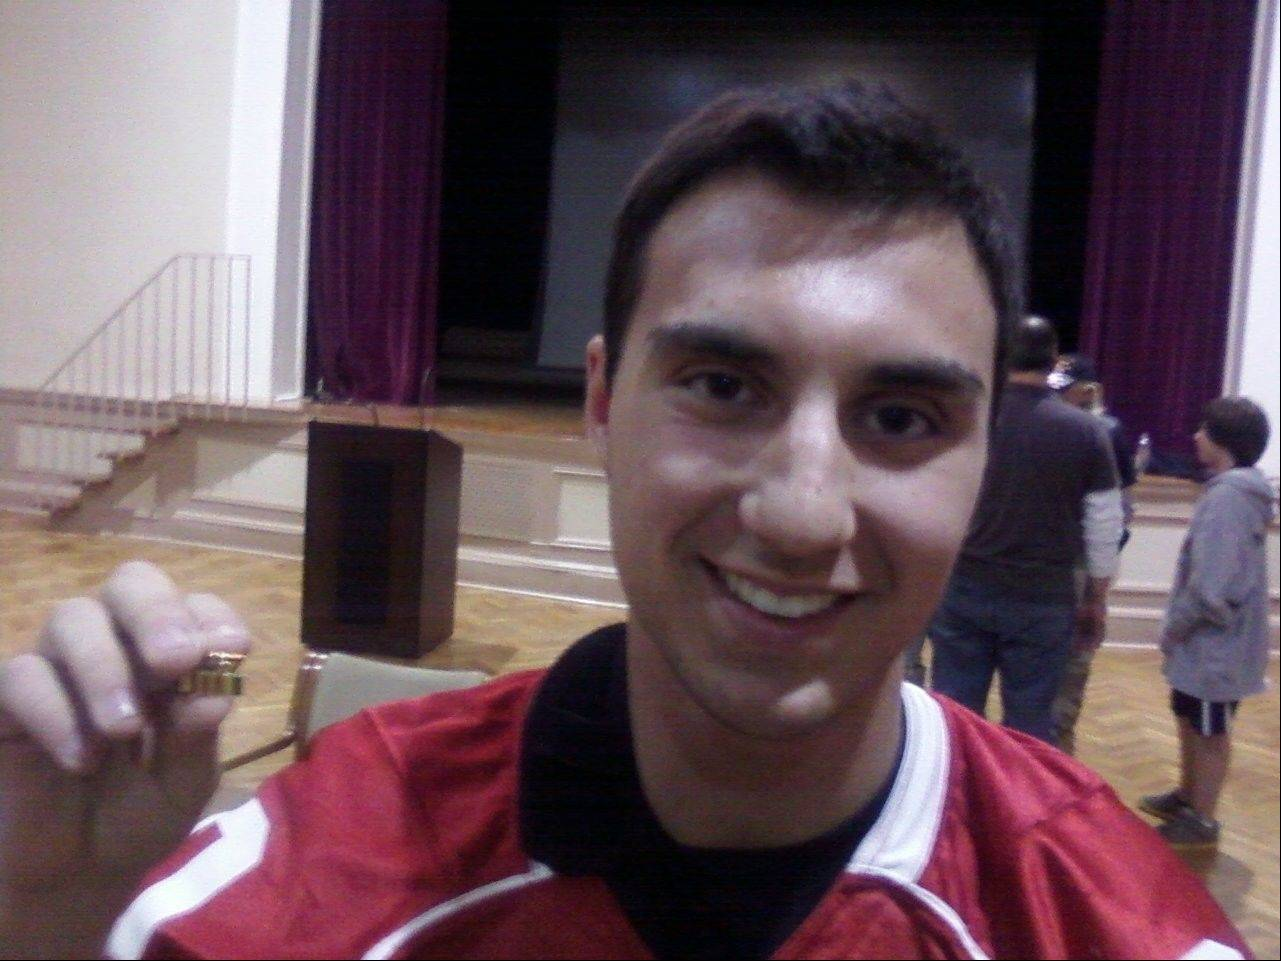 Mundelein senior linebacker Dominic Paliani shows off a pin he received from a Vietnam veteran at the Captain James A. Lovell Federal Health Care Center in North Chicago.